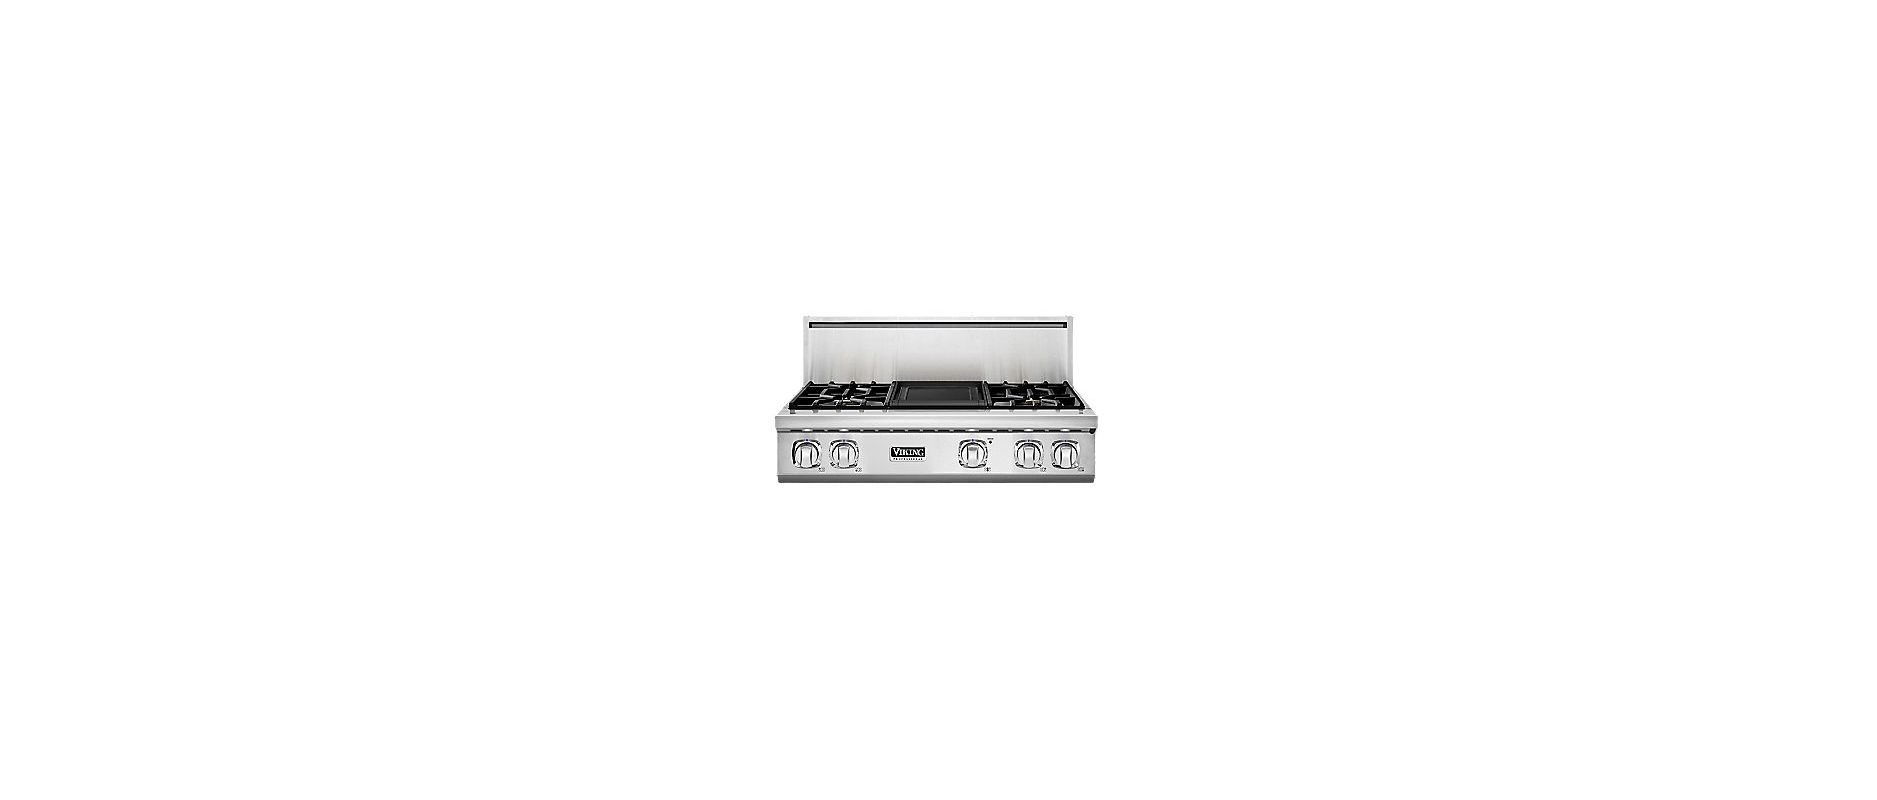 Viking VGRT7364G 36 Inch Wide Built-In Natural Gas Cooktop with Elevation Burner photo